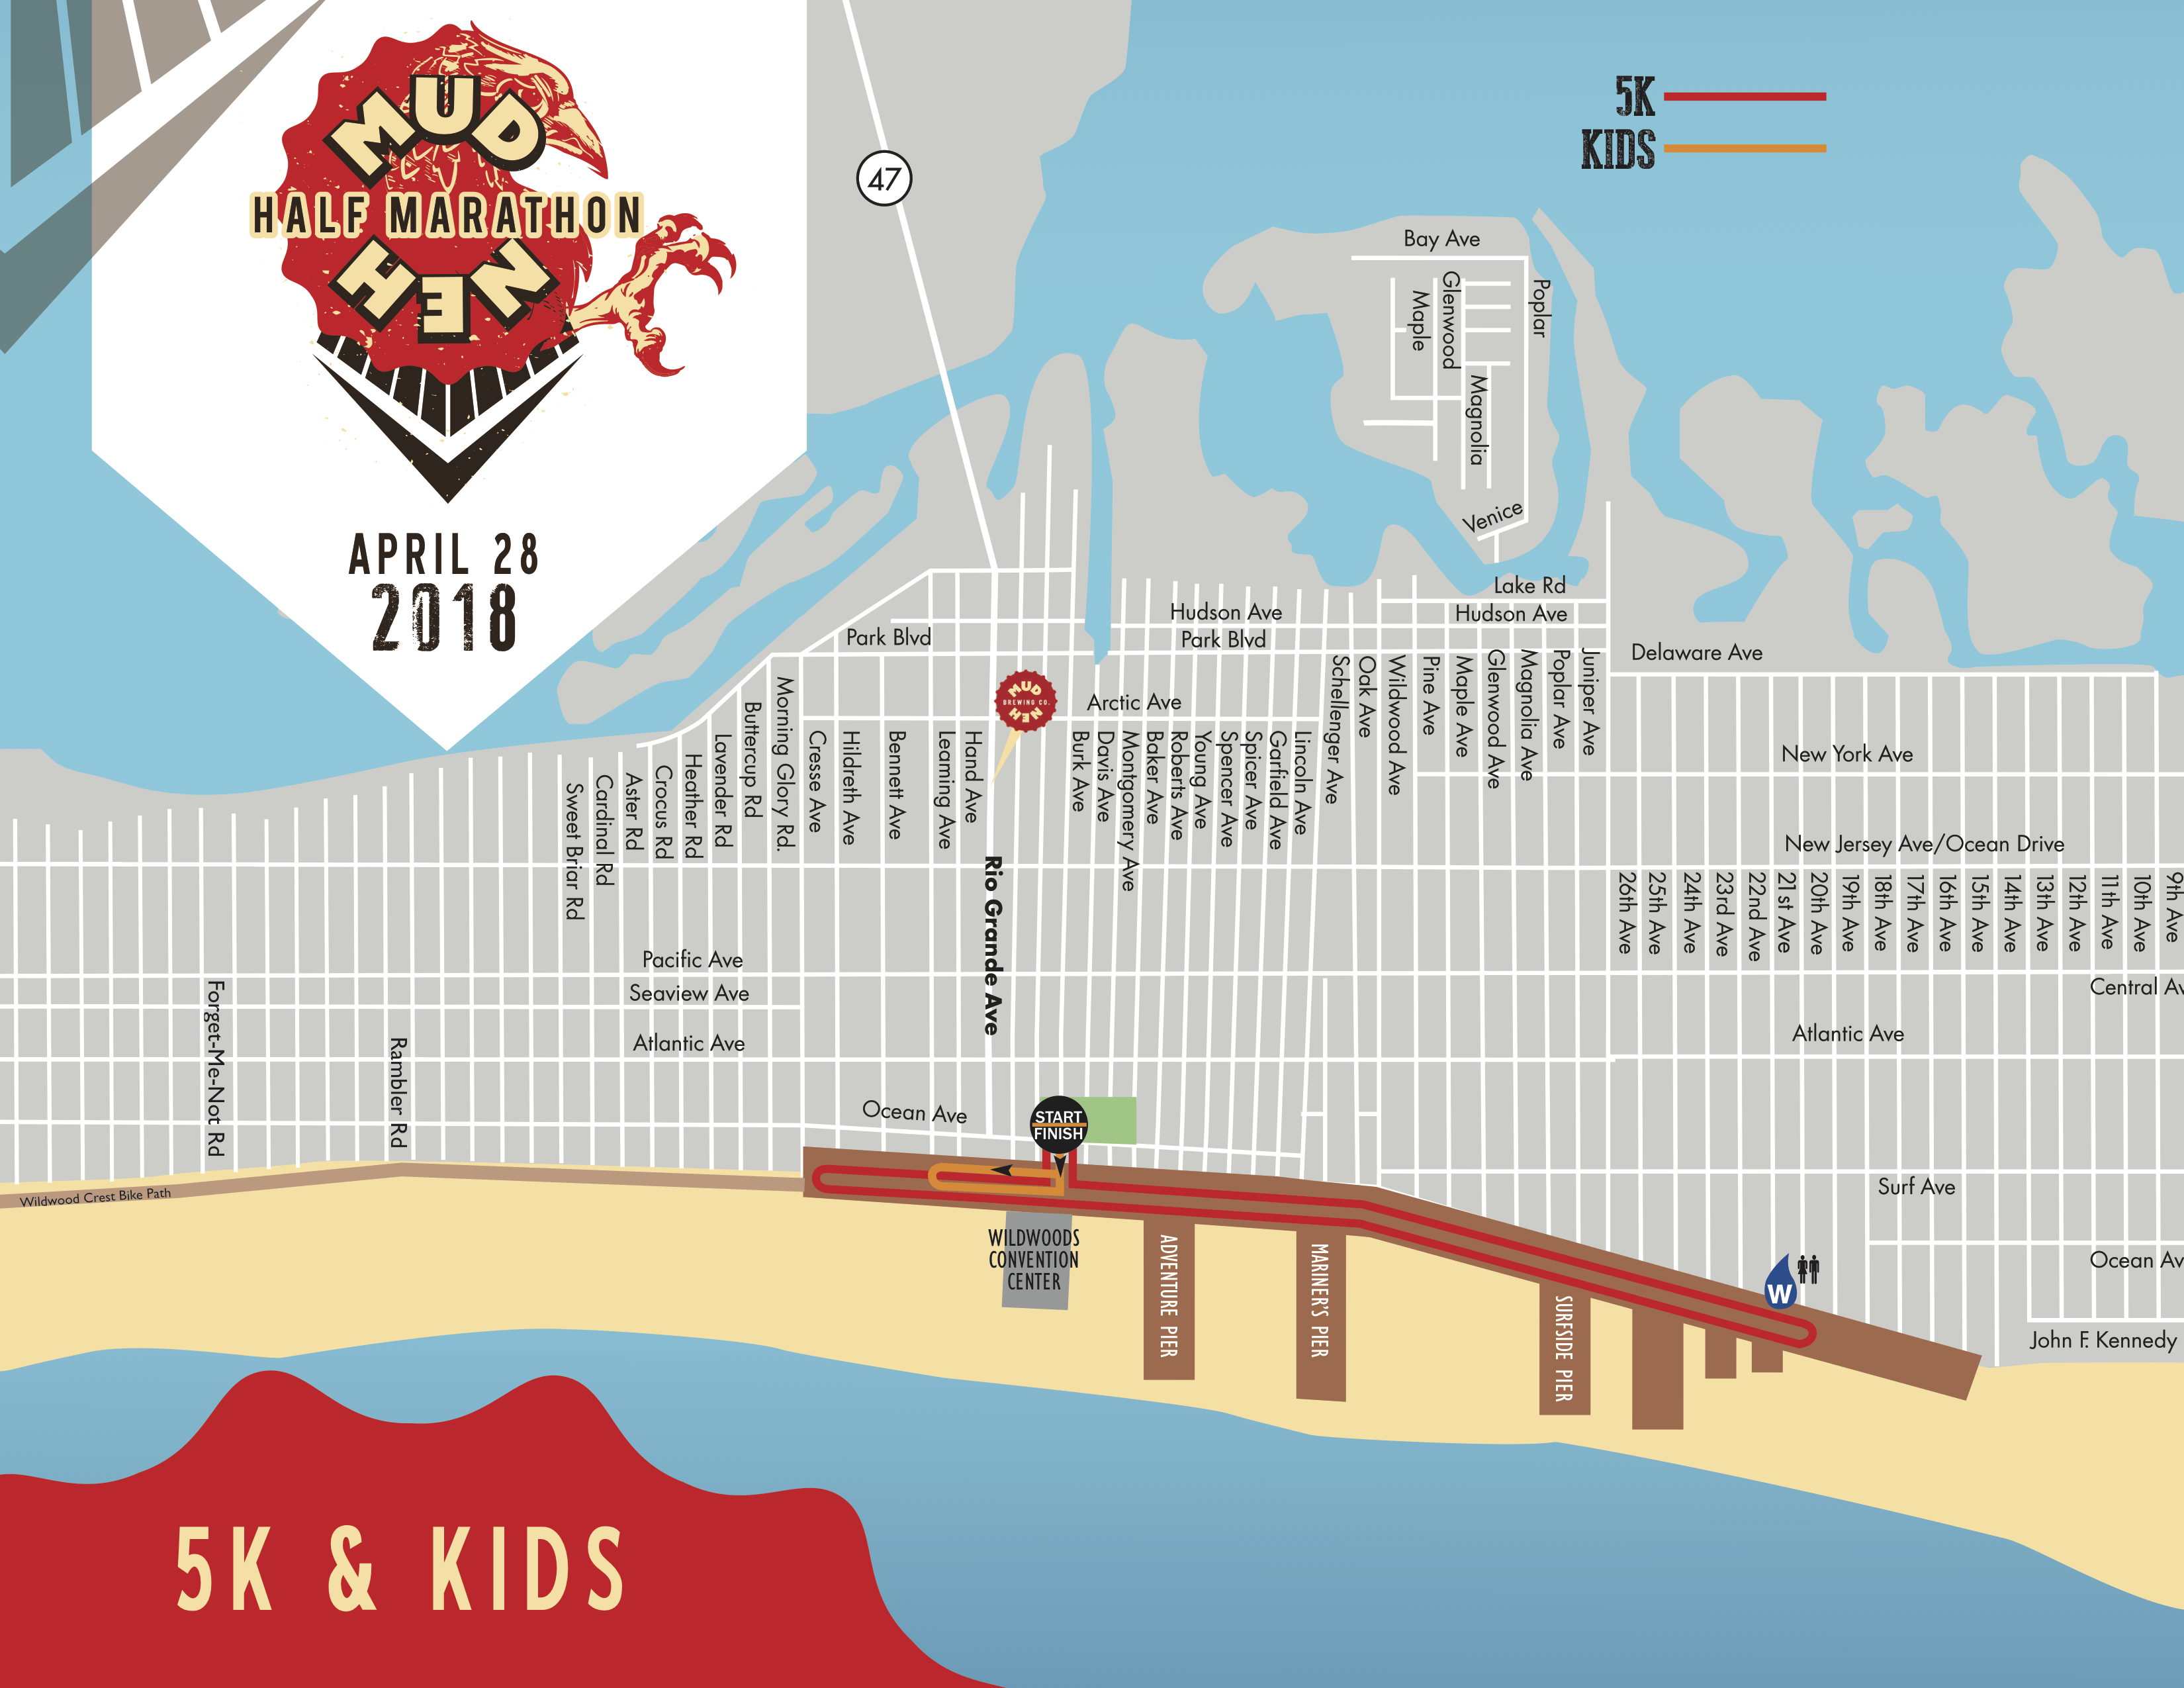 5K and Kids' Course